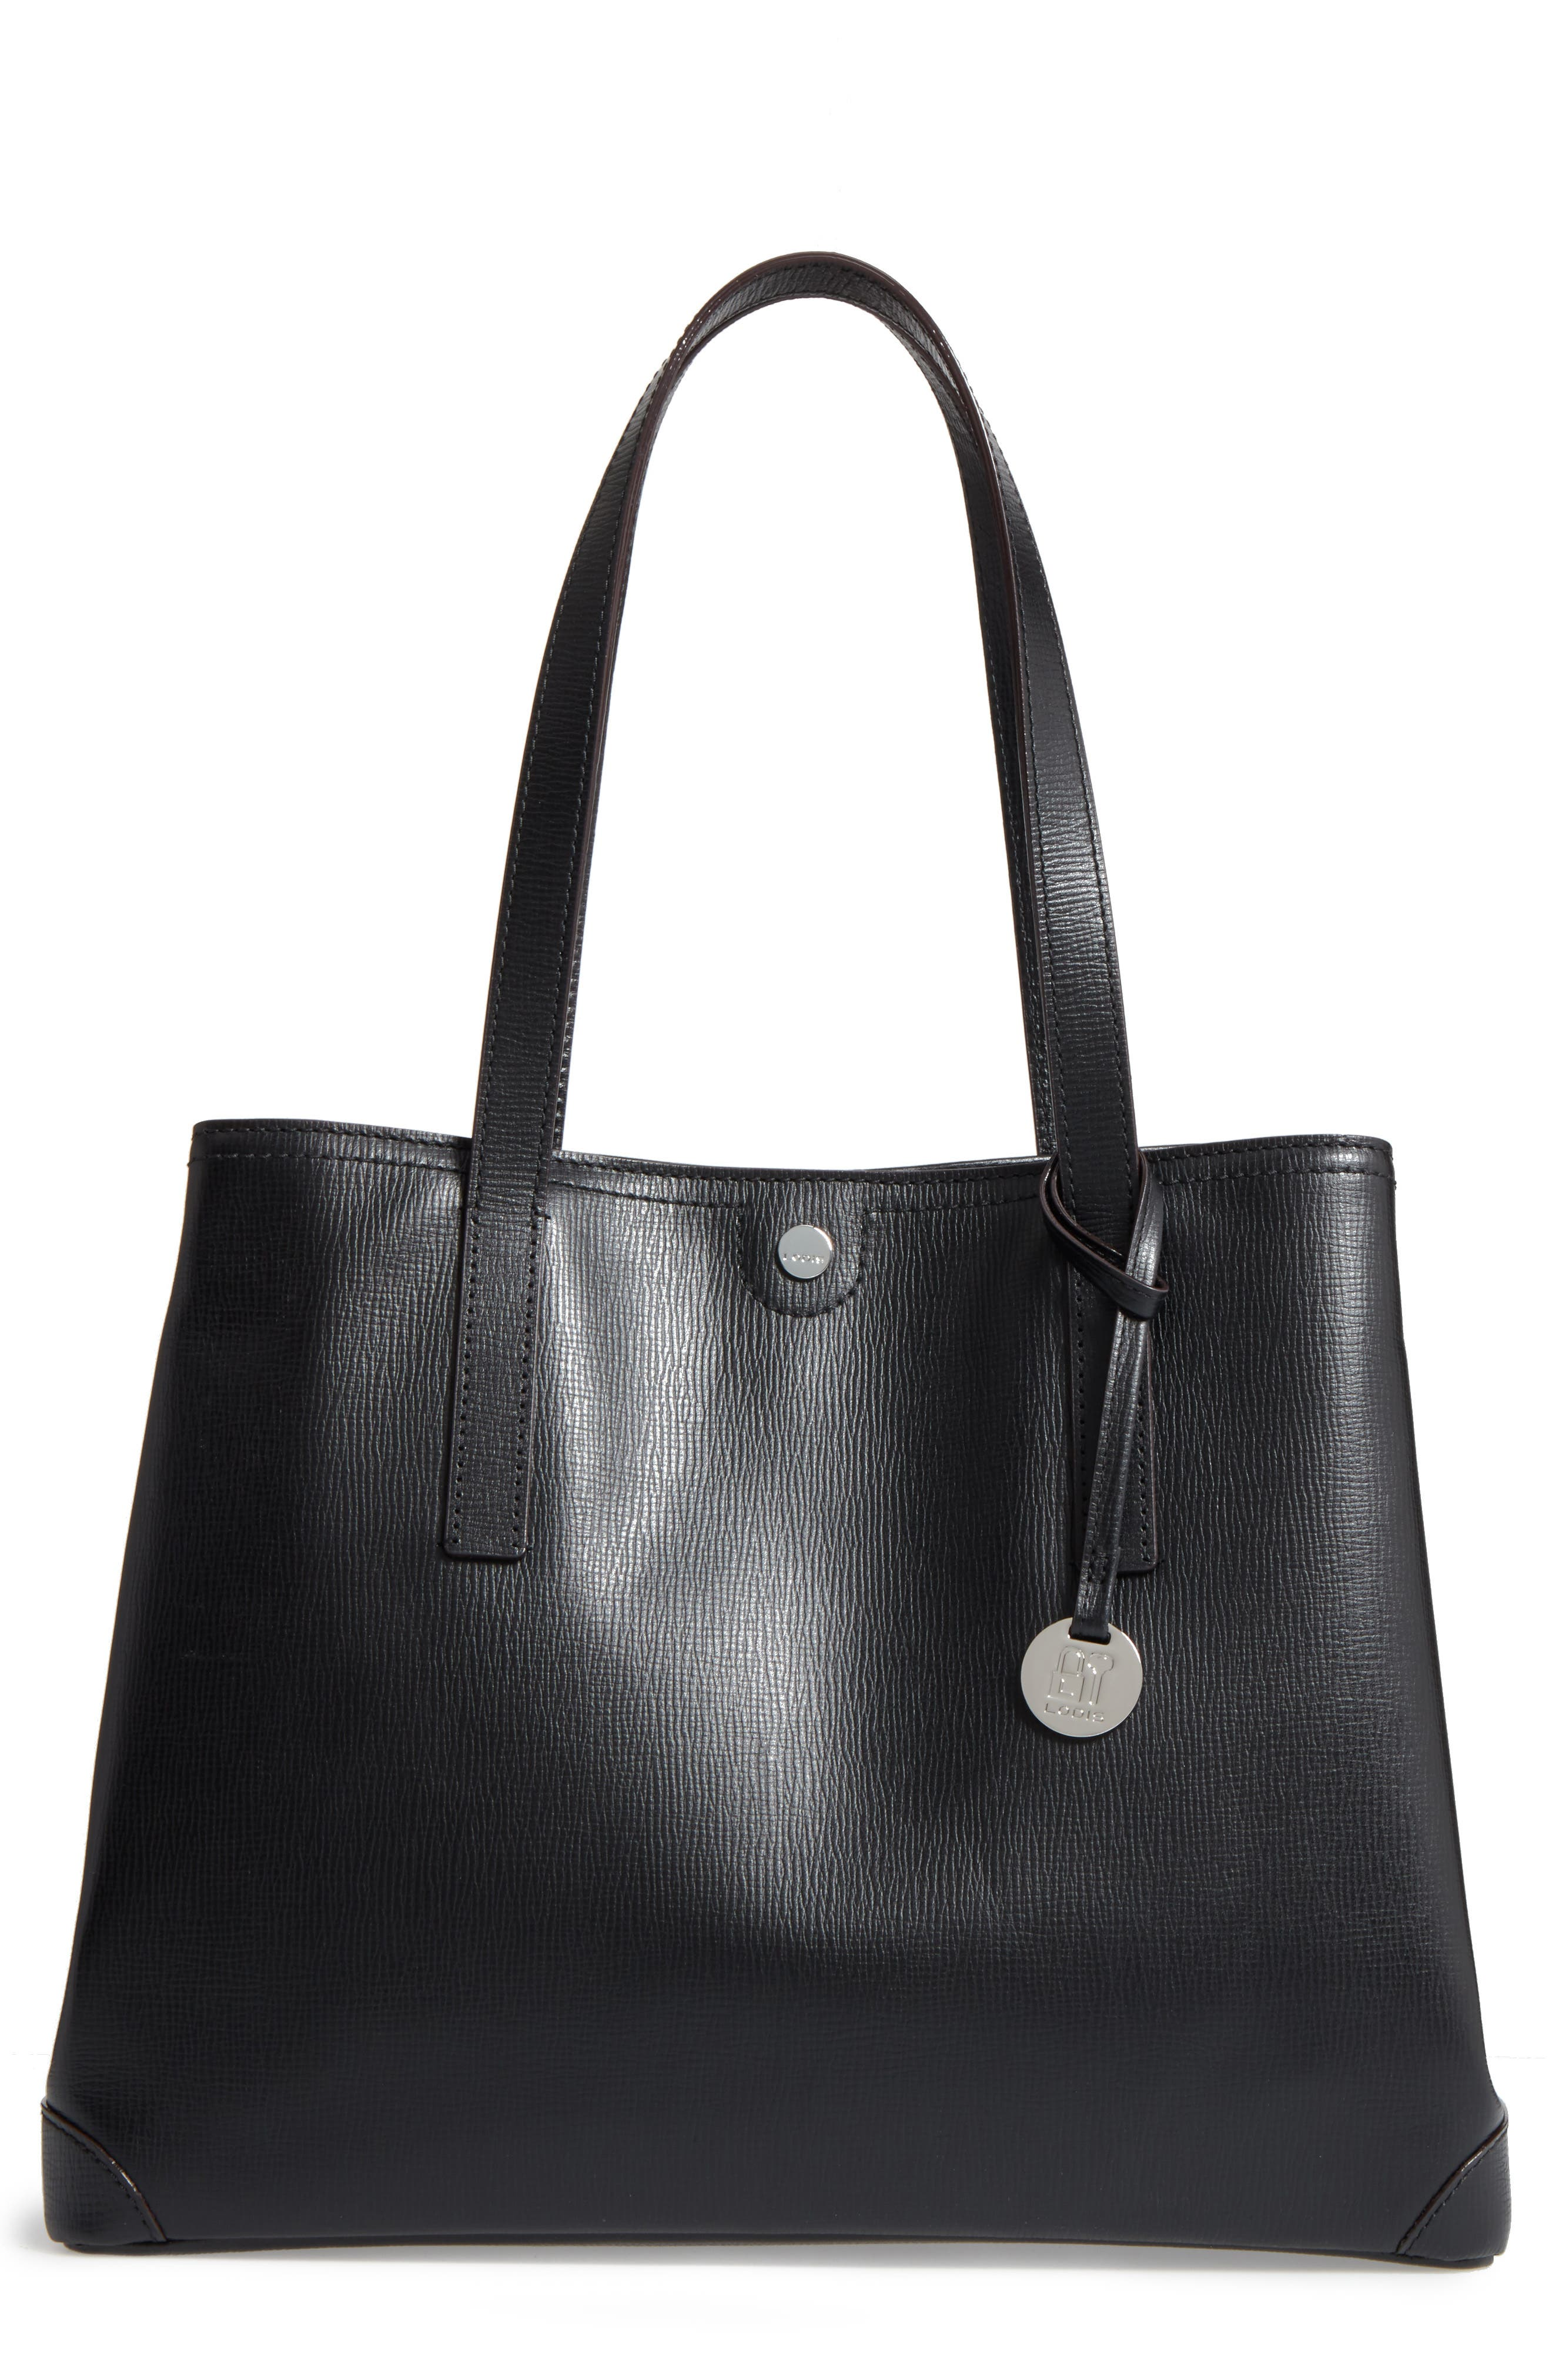 Main Image - LODIS Los Angeles Business Chic Louisa RFID-Protected Leather Tote